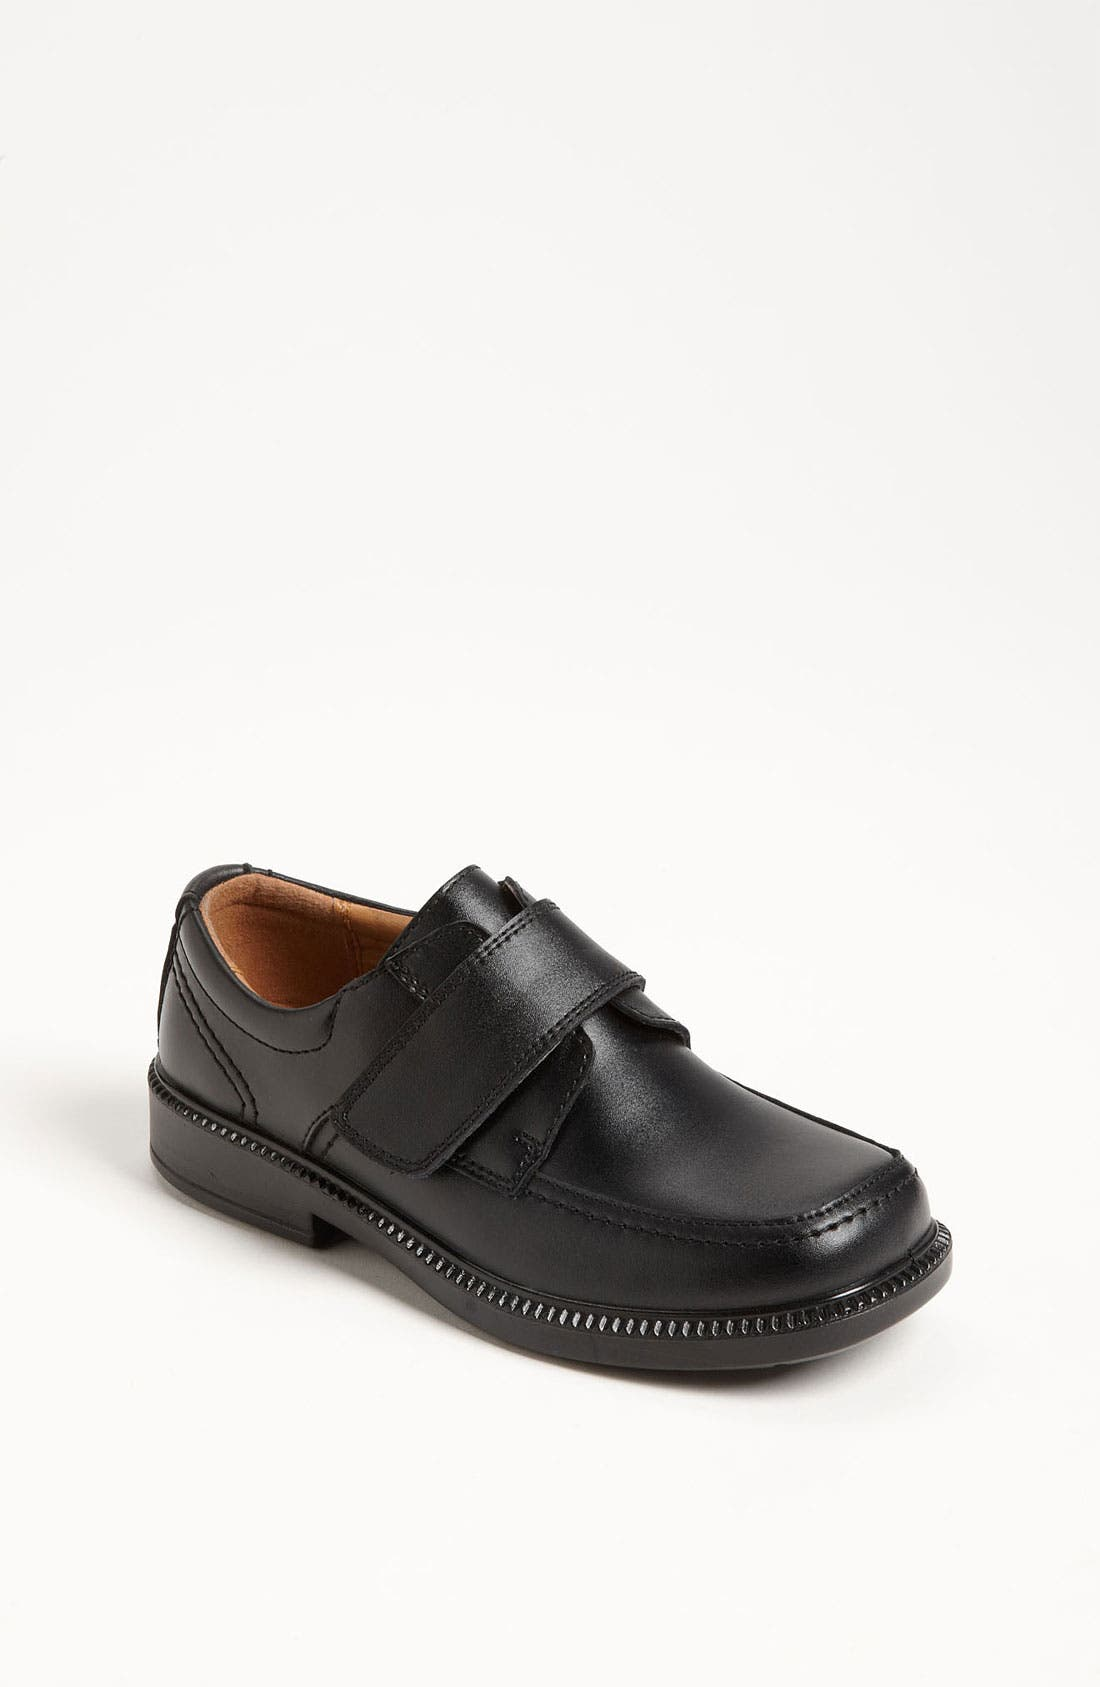 'Berwyn' Slip-On,                             Main thumbnail 1, color,                             Black